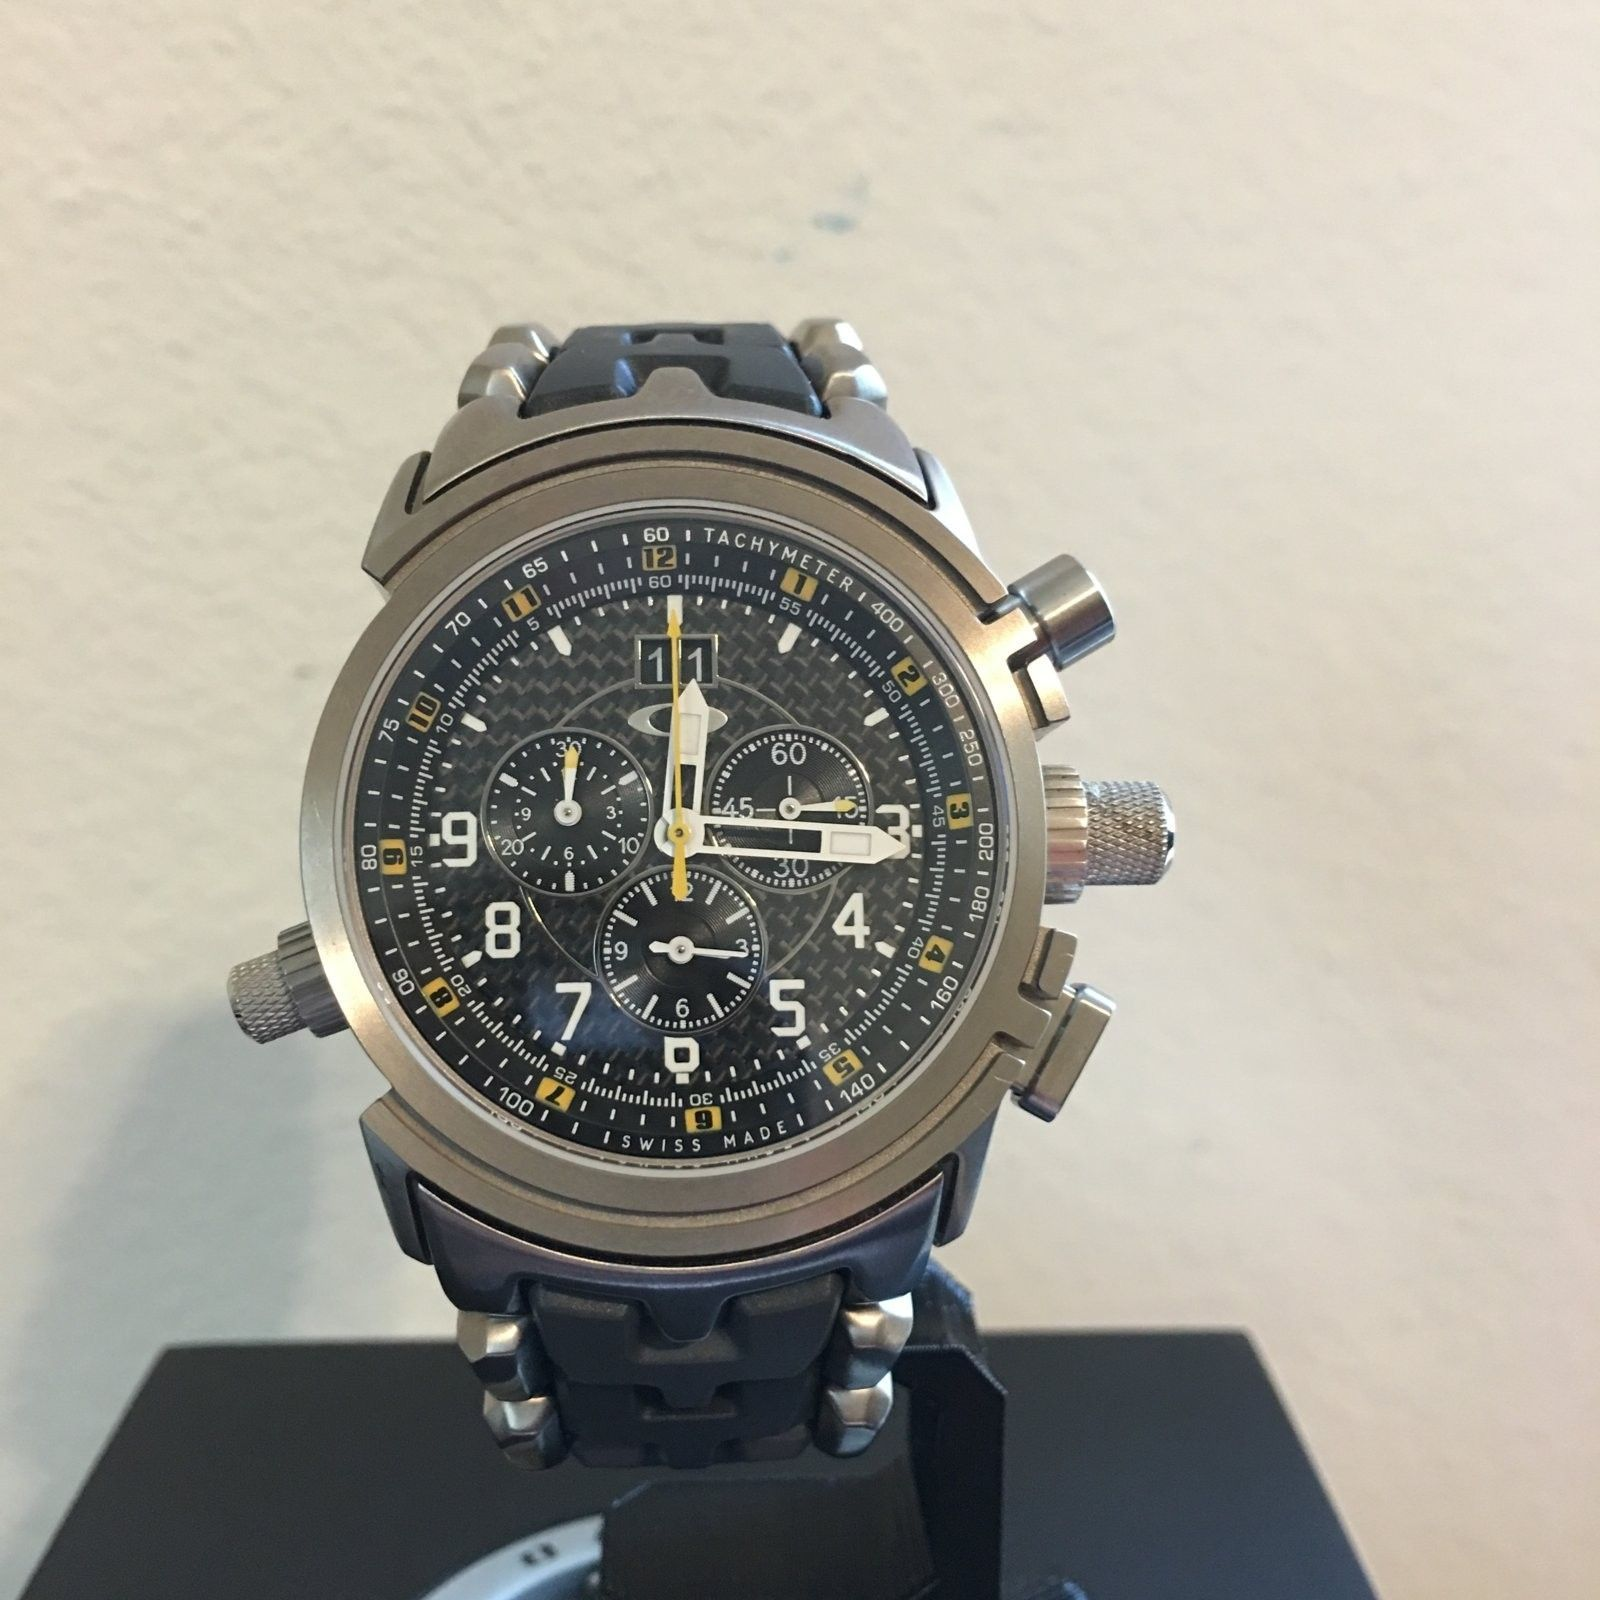 12-Gauge Special Edition Carbon Fiber/Yellow Dial (Free Watch Vault!) - IMG_0121.JPG